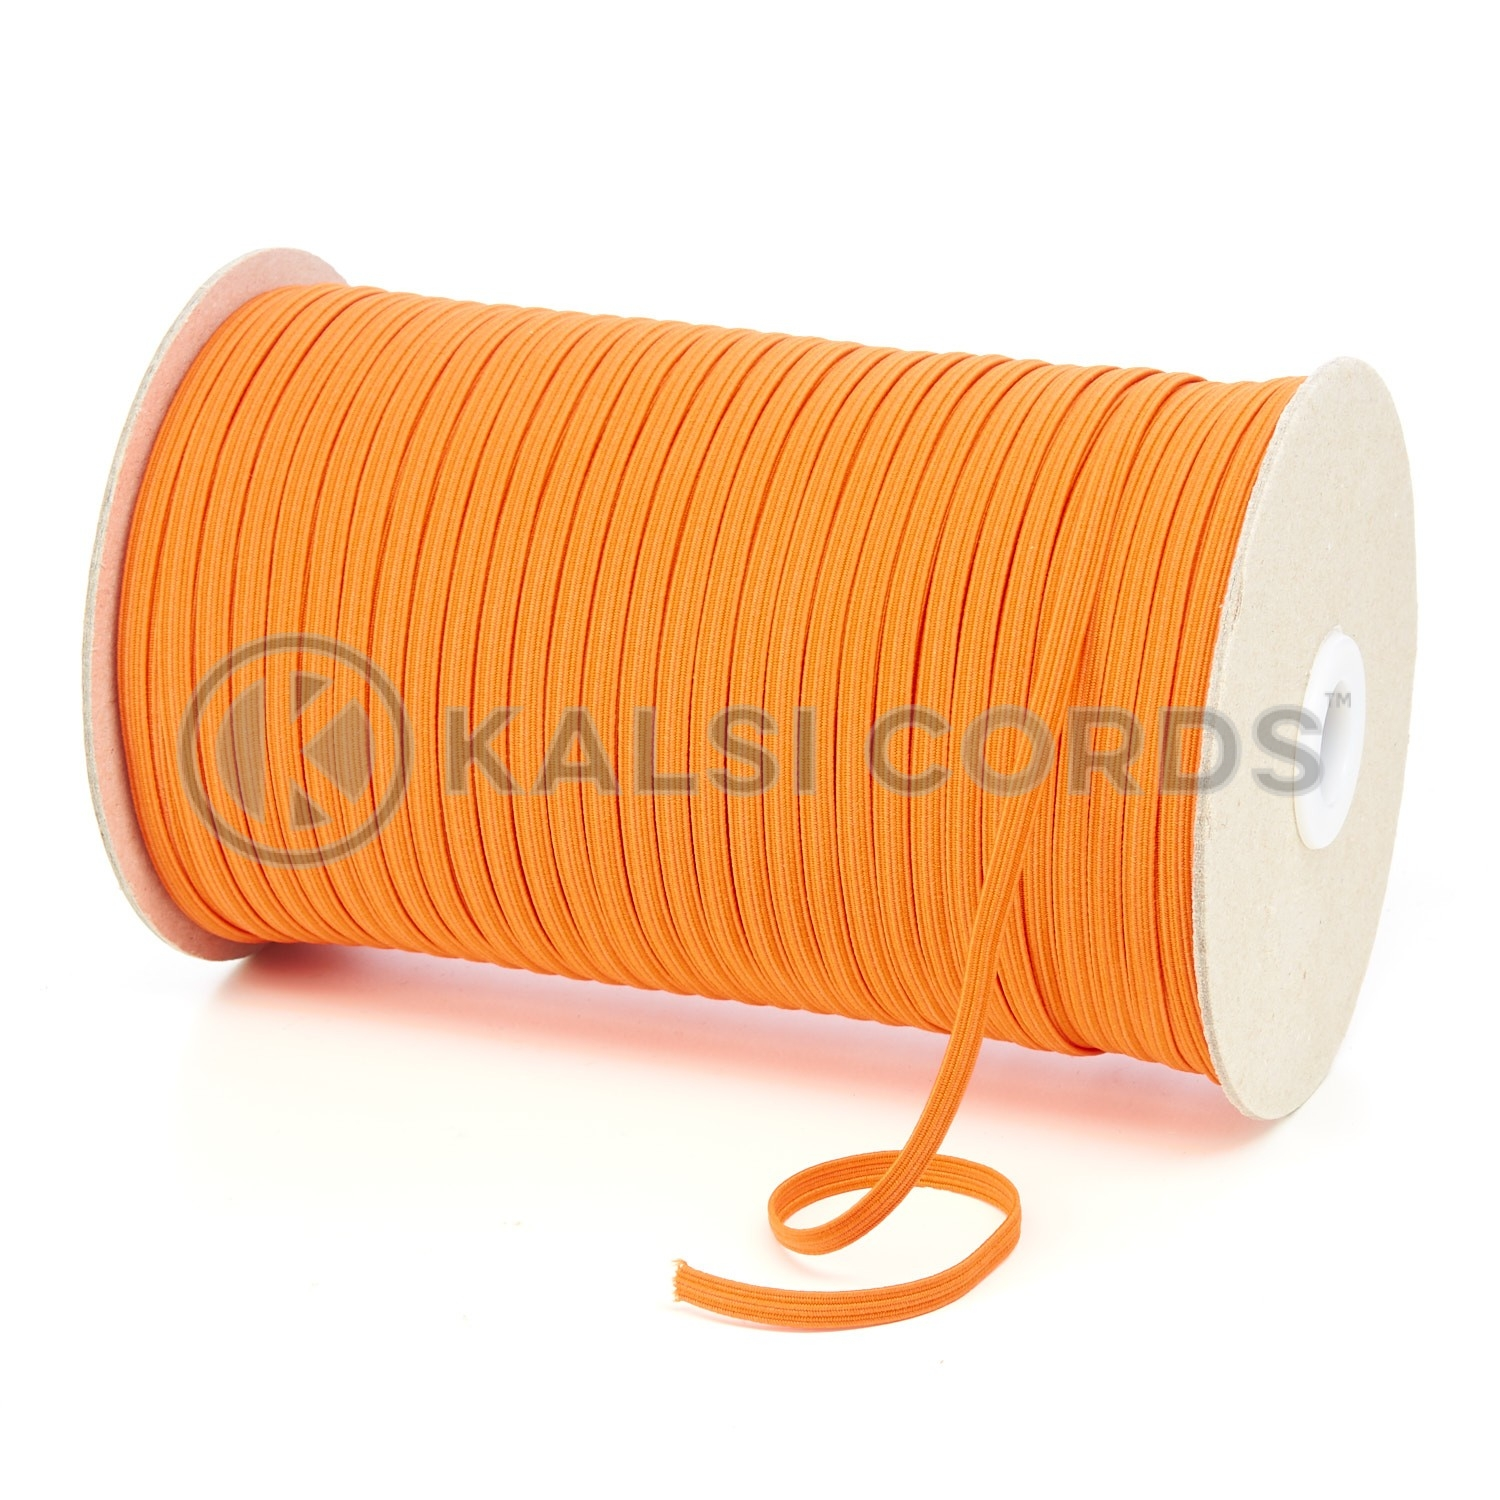 Orange 4mm 6 Cord Flat Braided Elastic Roll Sewing Face Masks TPE10 Kalsi Cords